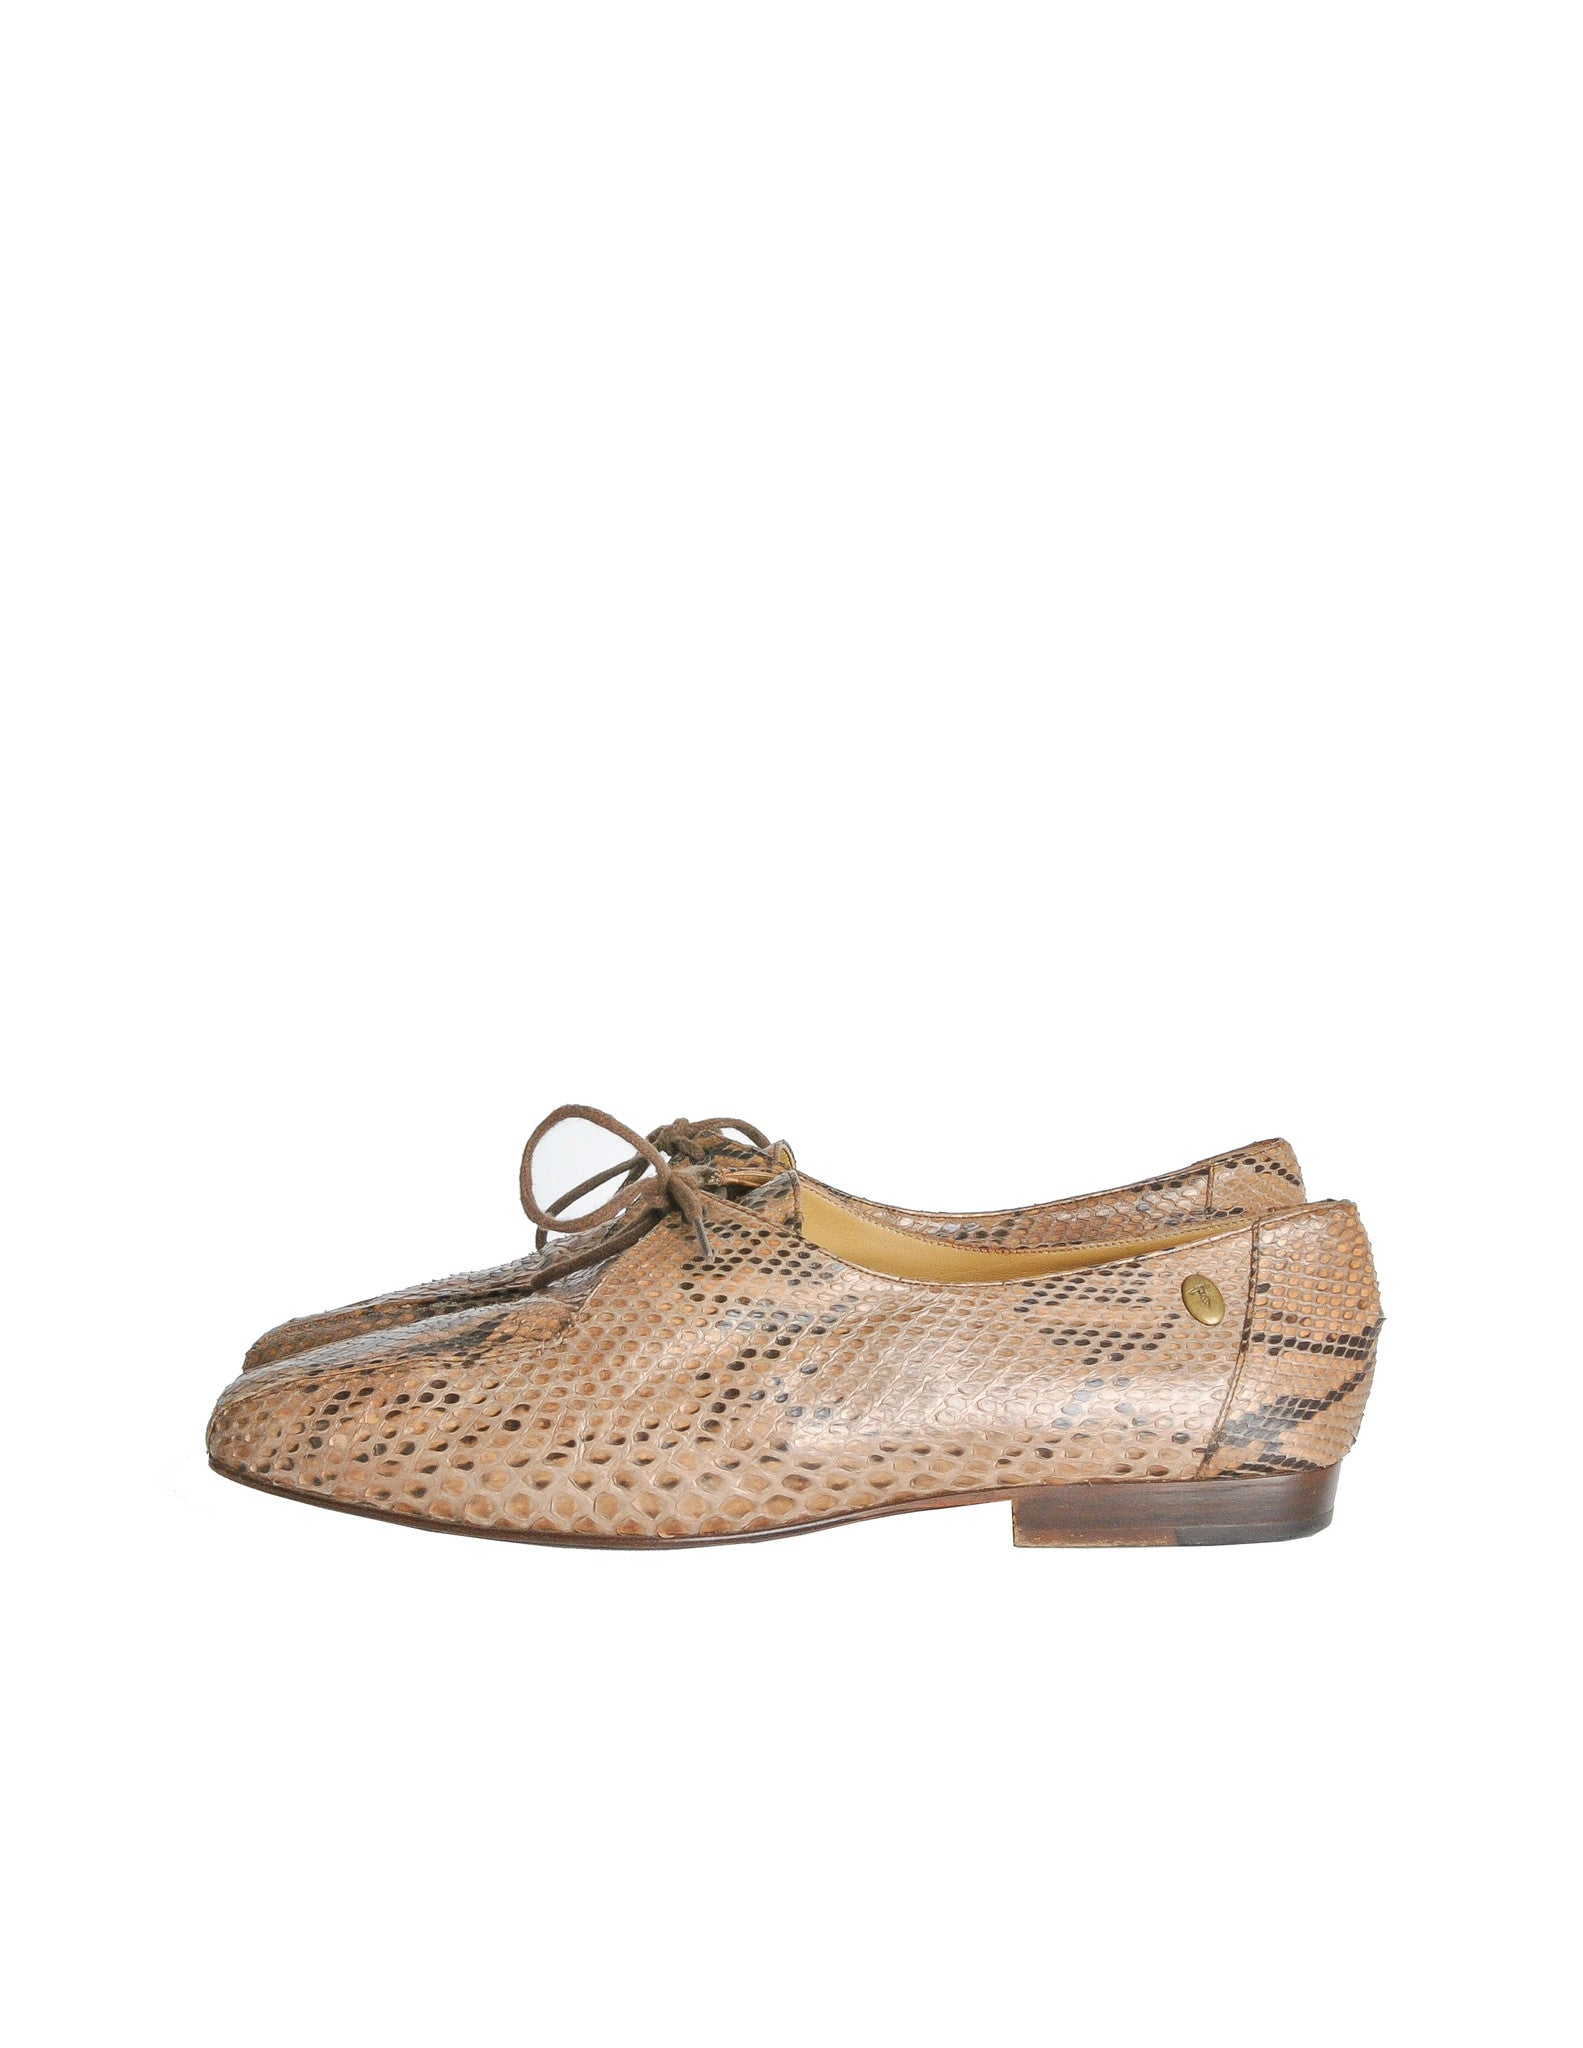 Trussardi Vintage Snakeskin Oxford Shoes - Amarcord Vintage Fashion  - 1